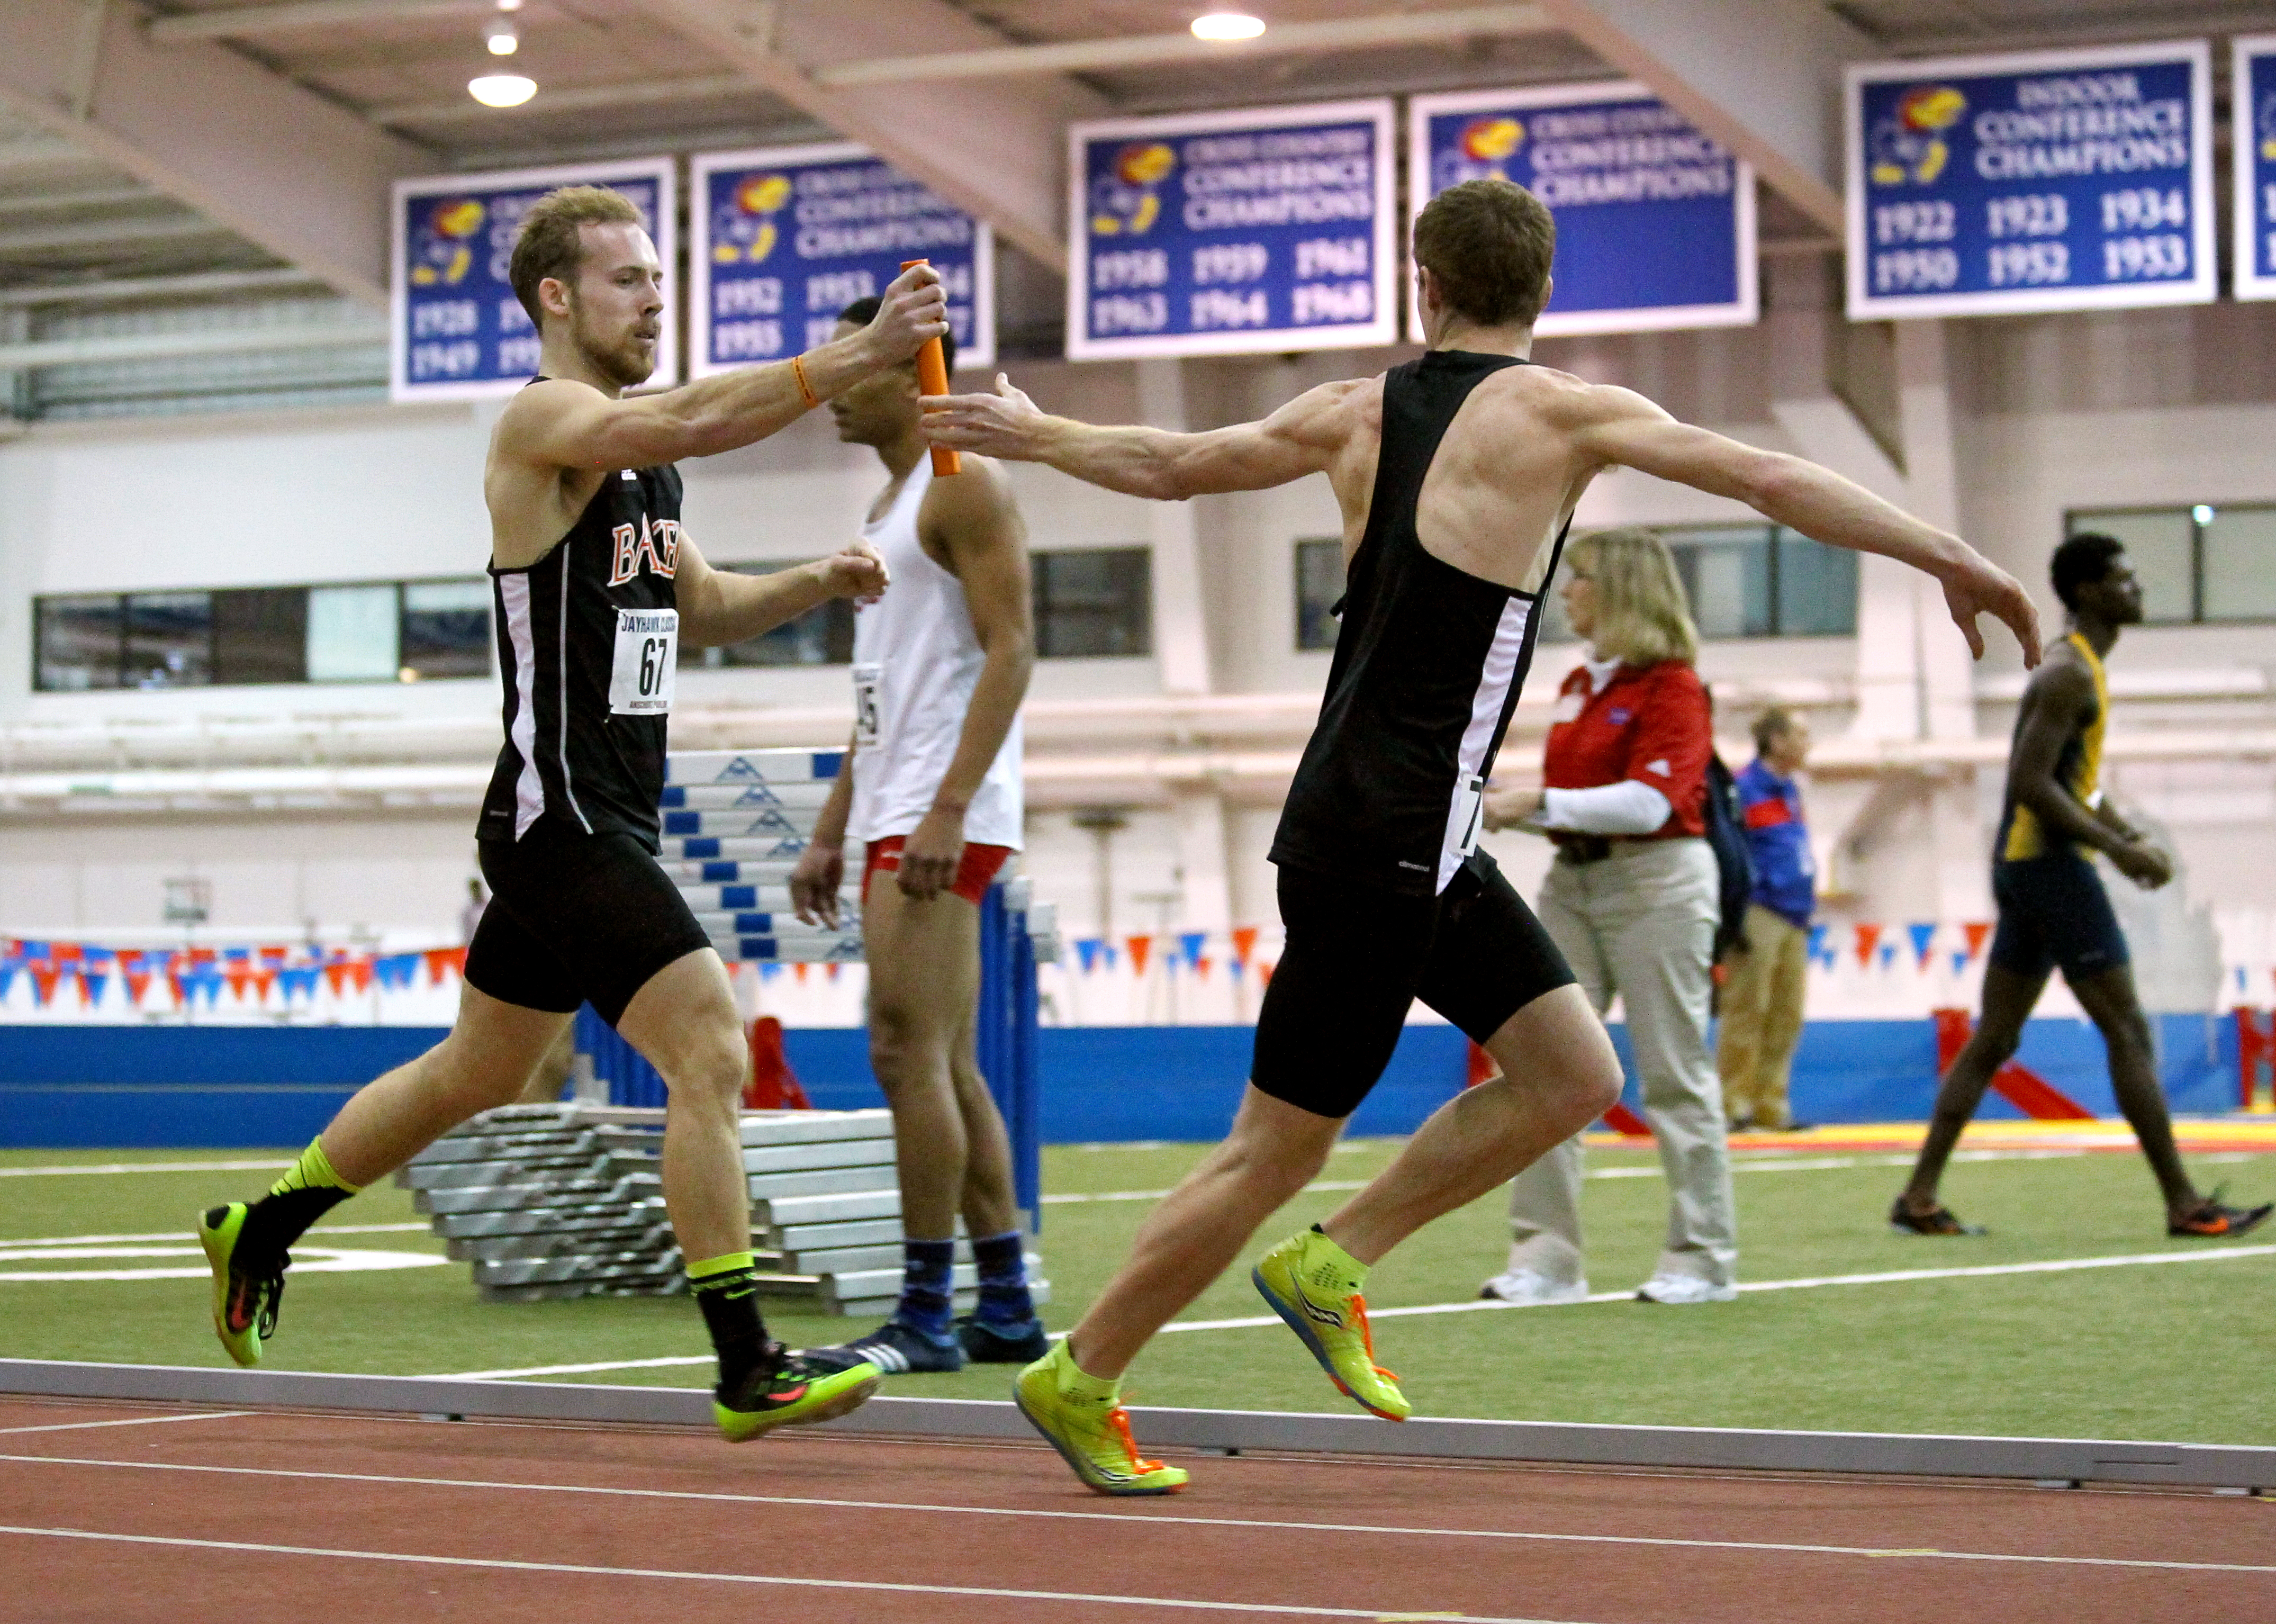 Senior Tyler Randall, left, was one of the five Baker athletes who qualified for the NAIA Indoor Track and Field National Championships. Photo by Chad Phillips.